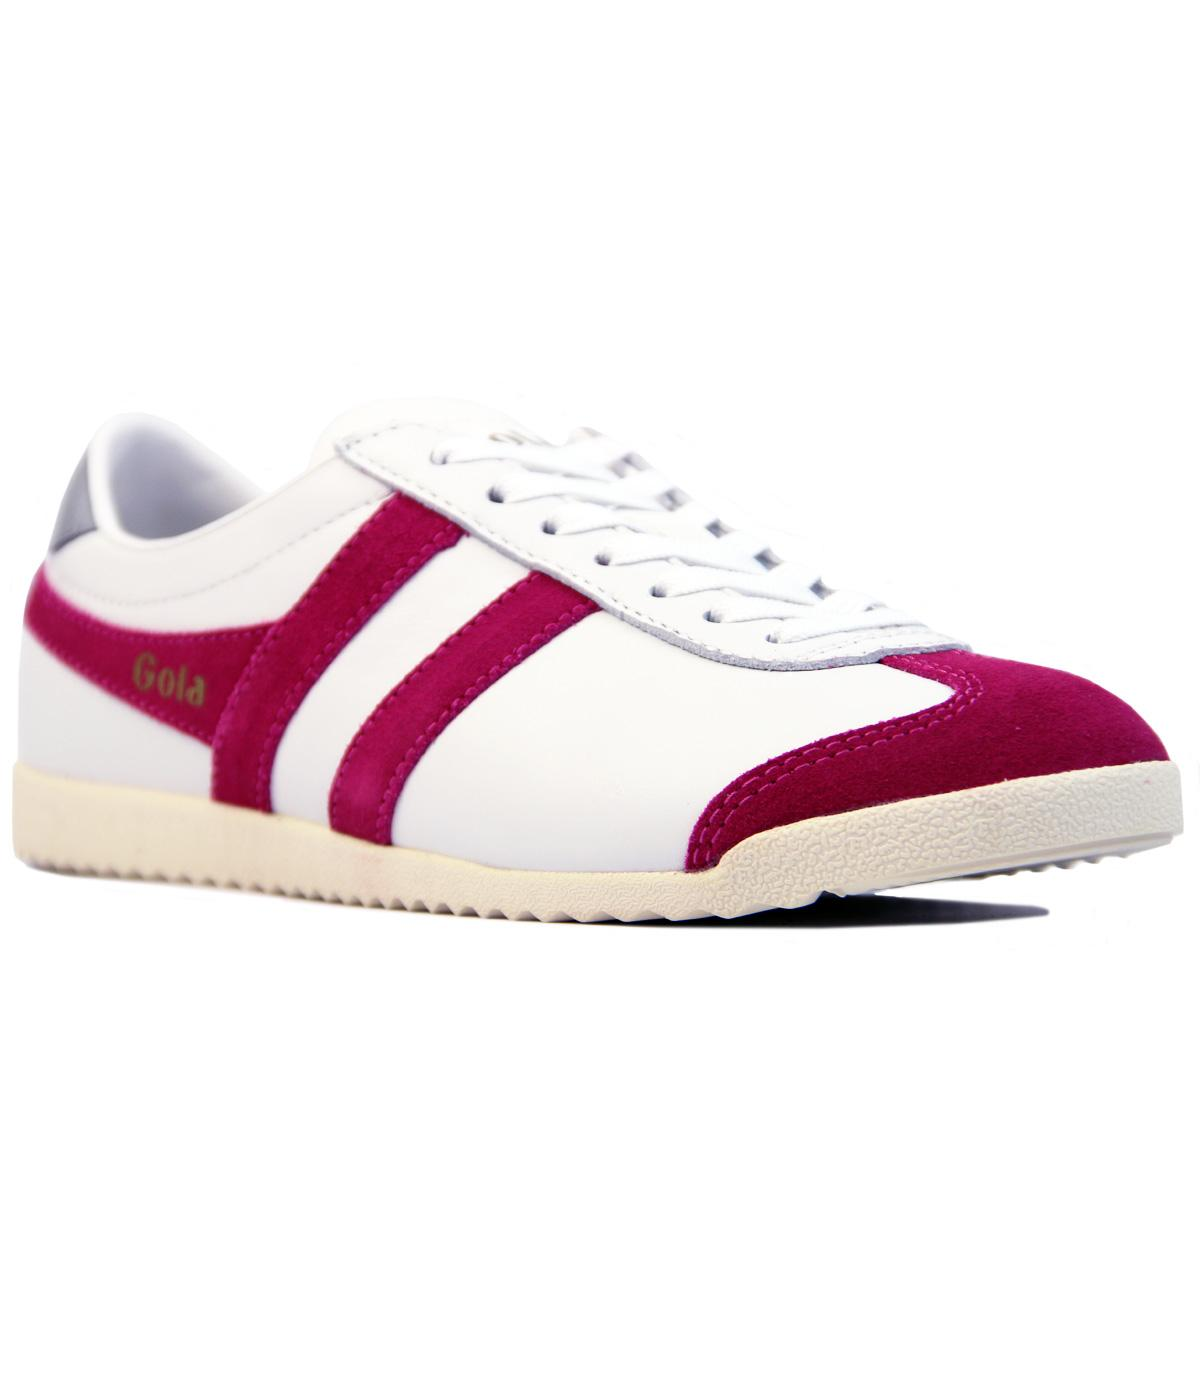 GOLA Bullet Womens Retro Leather Trainers WHITE